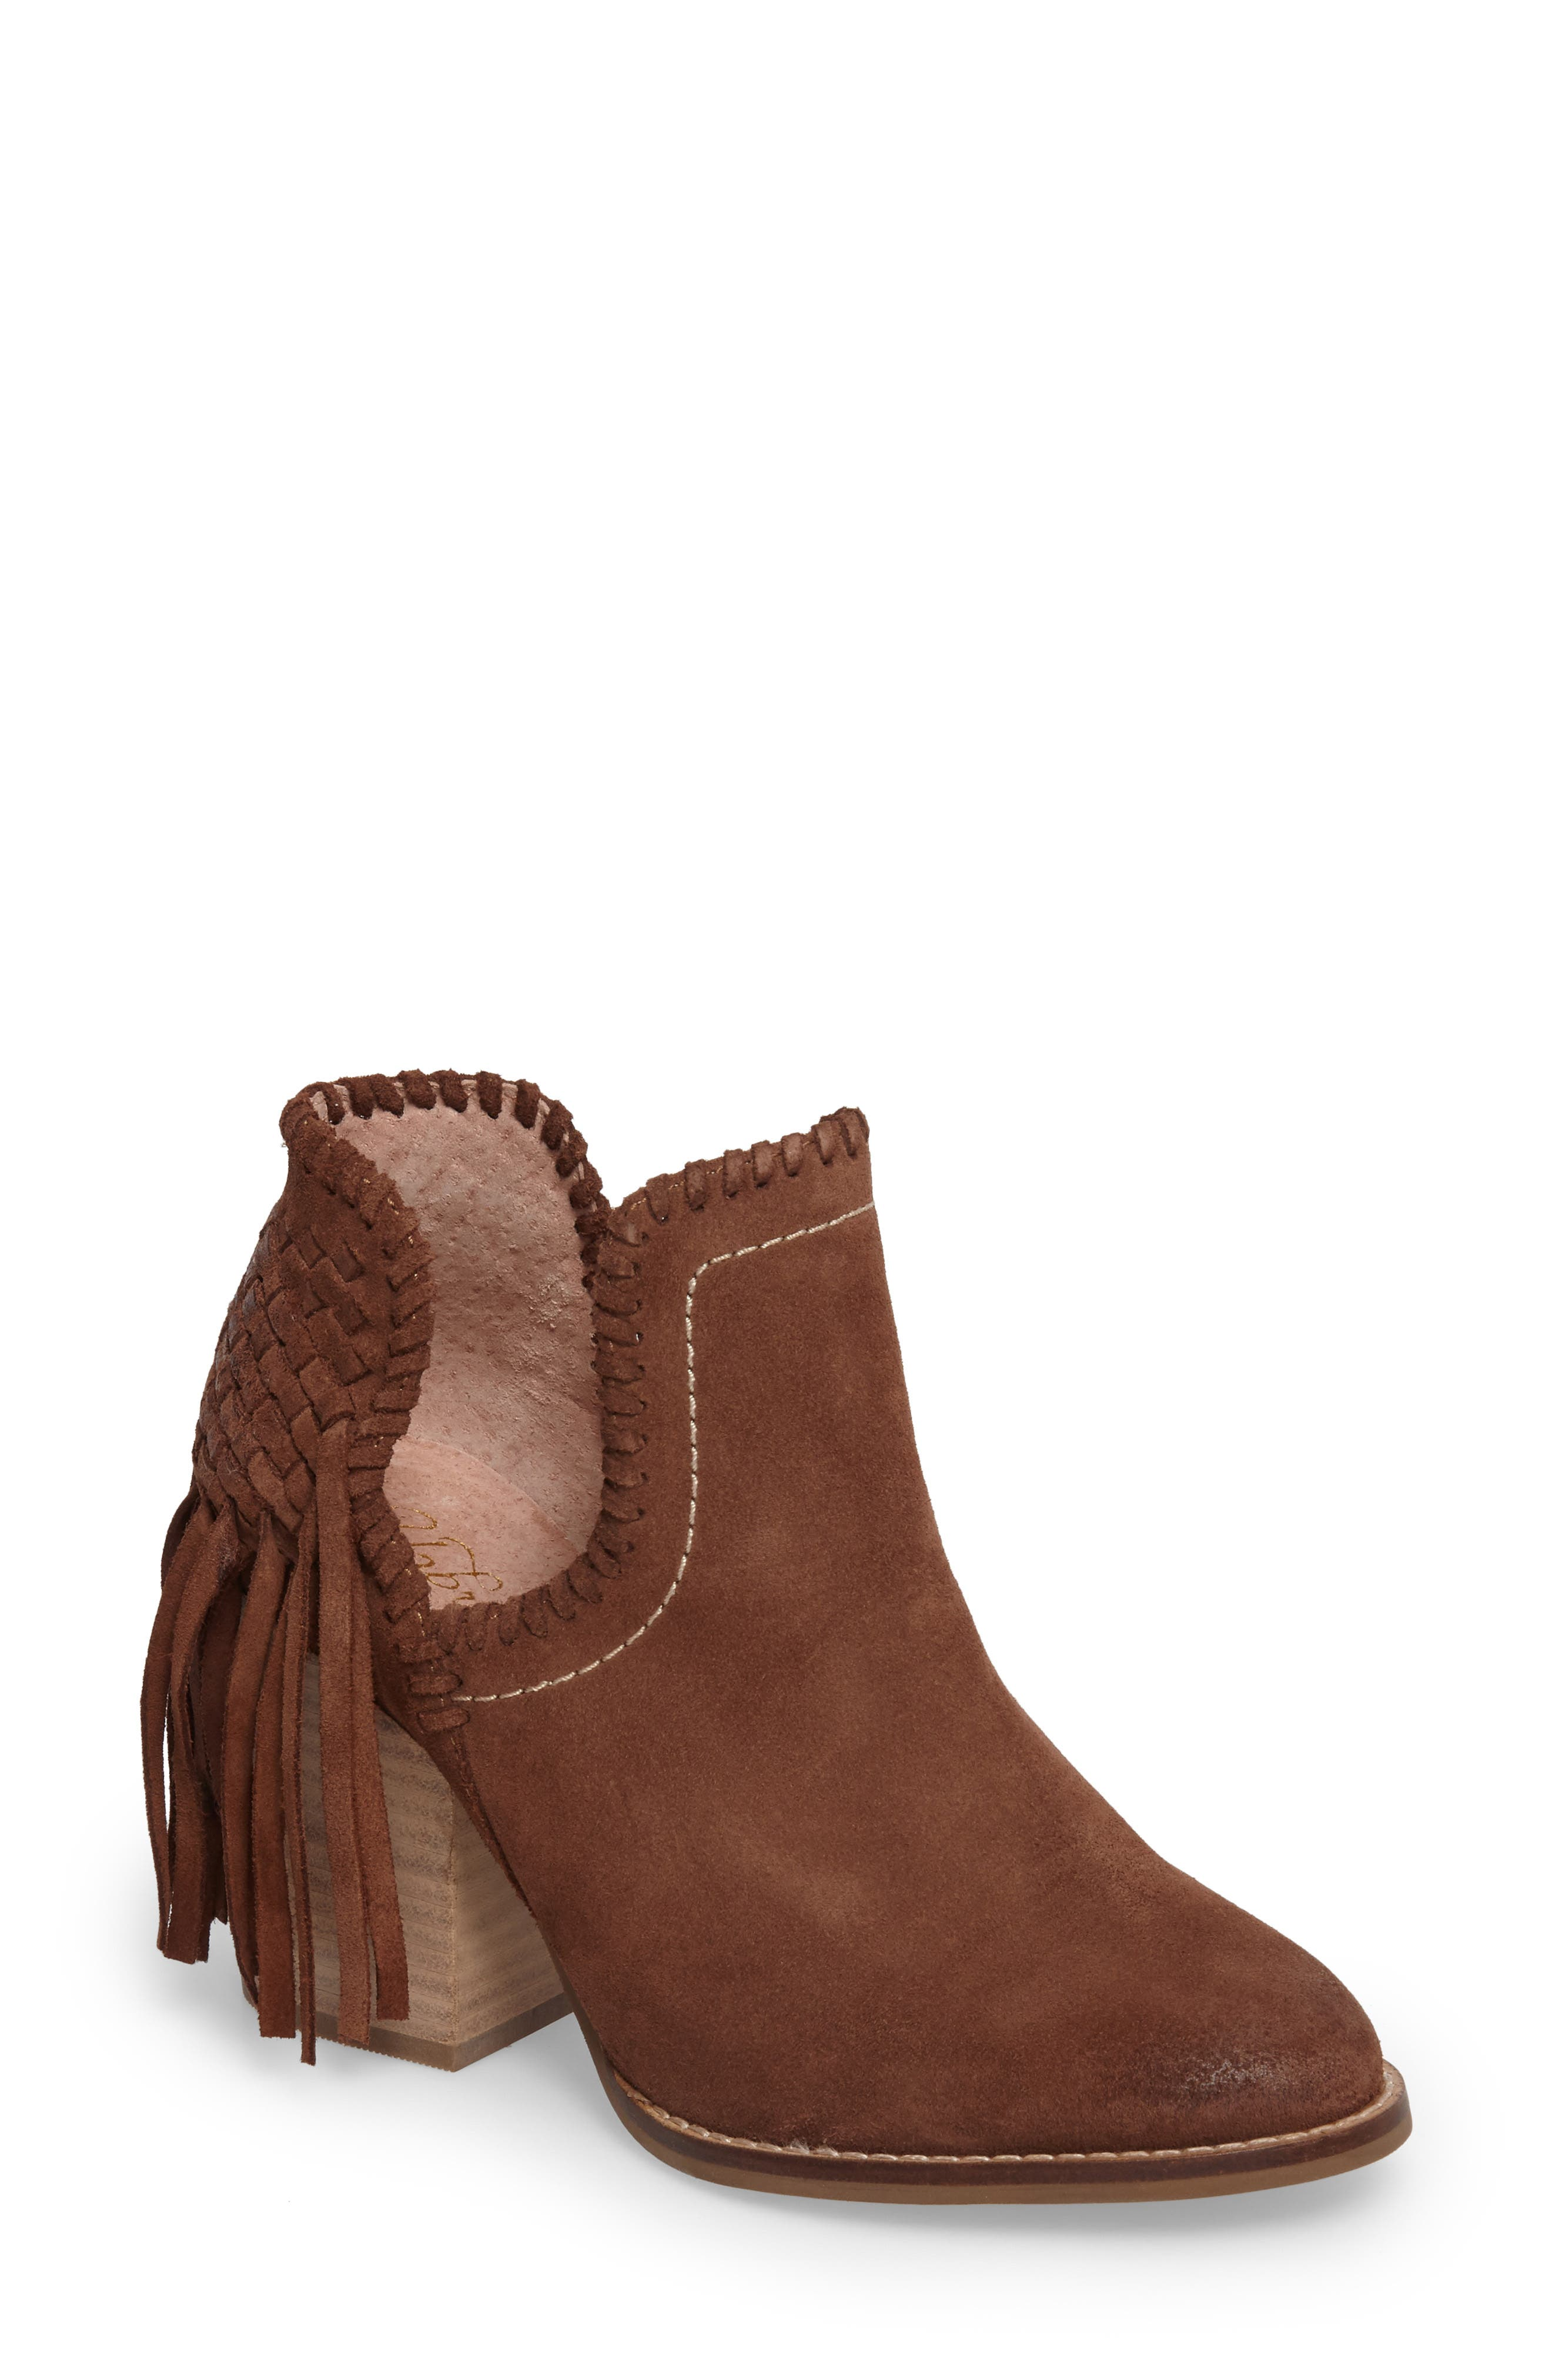 Main Image - Ariat Unbridled Lily Bootie (Women)